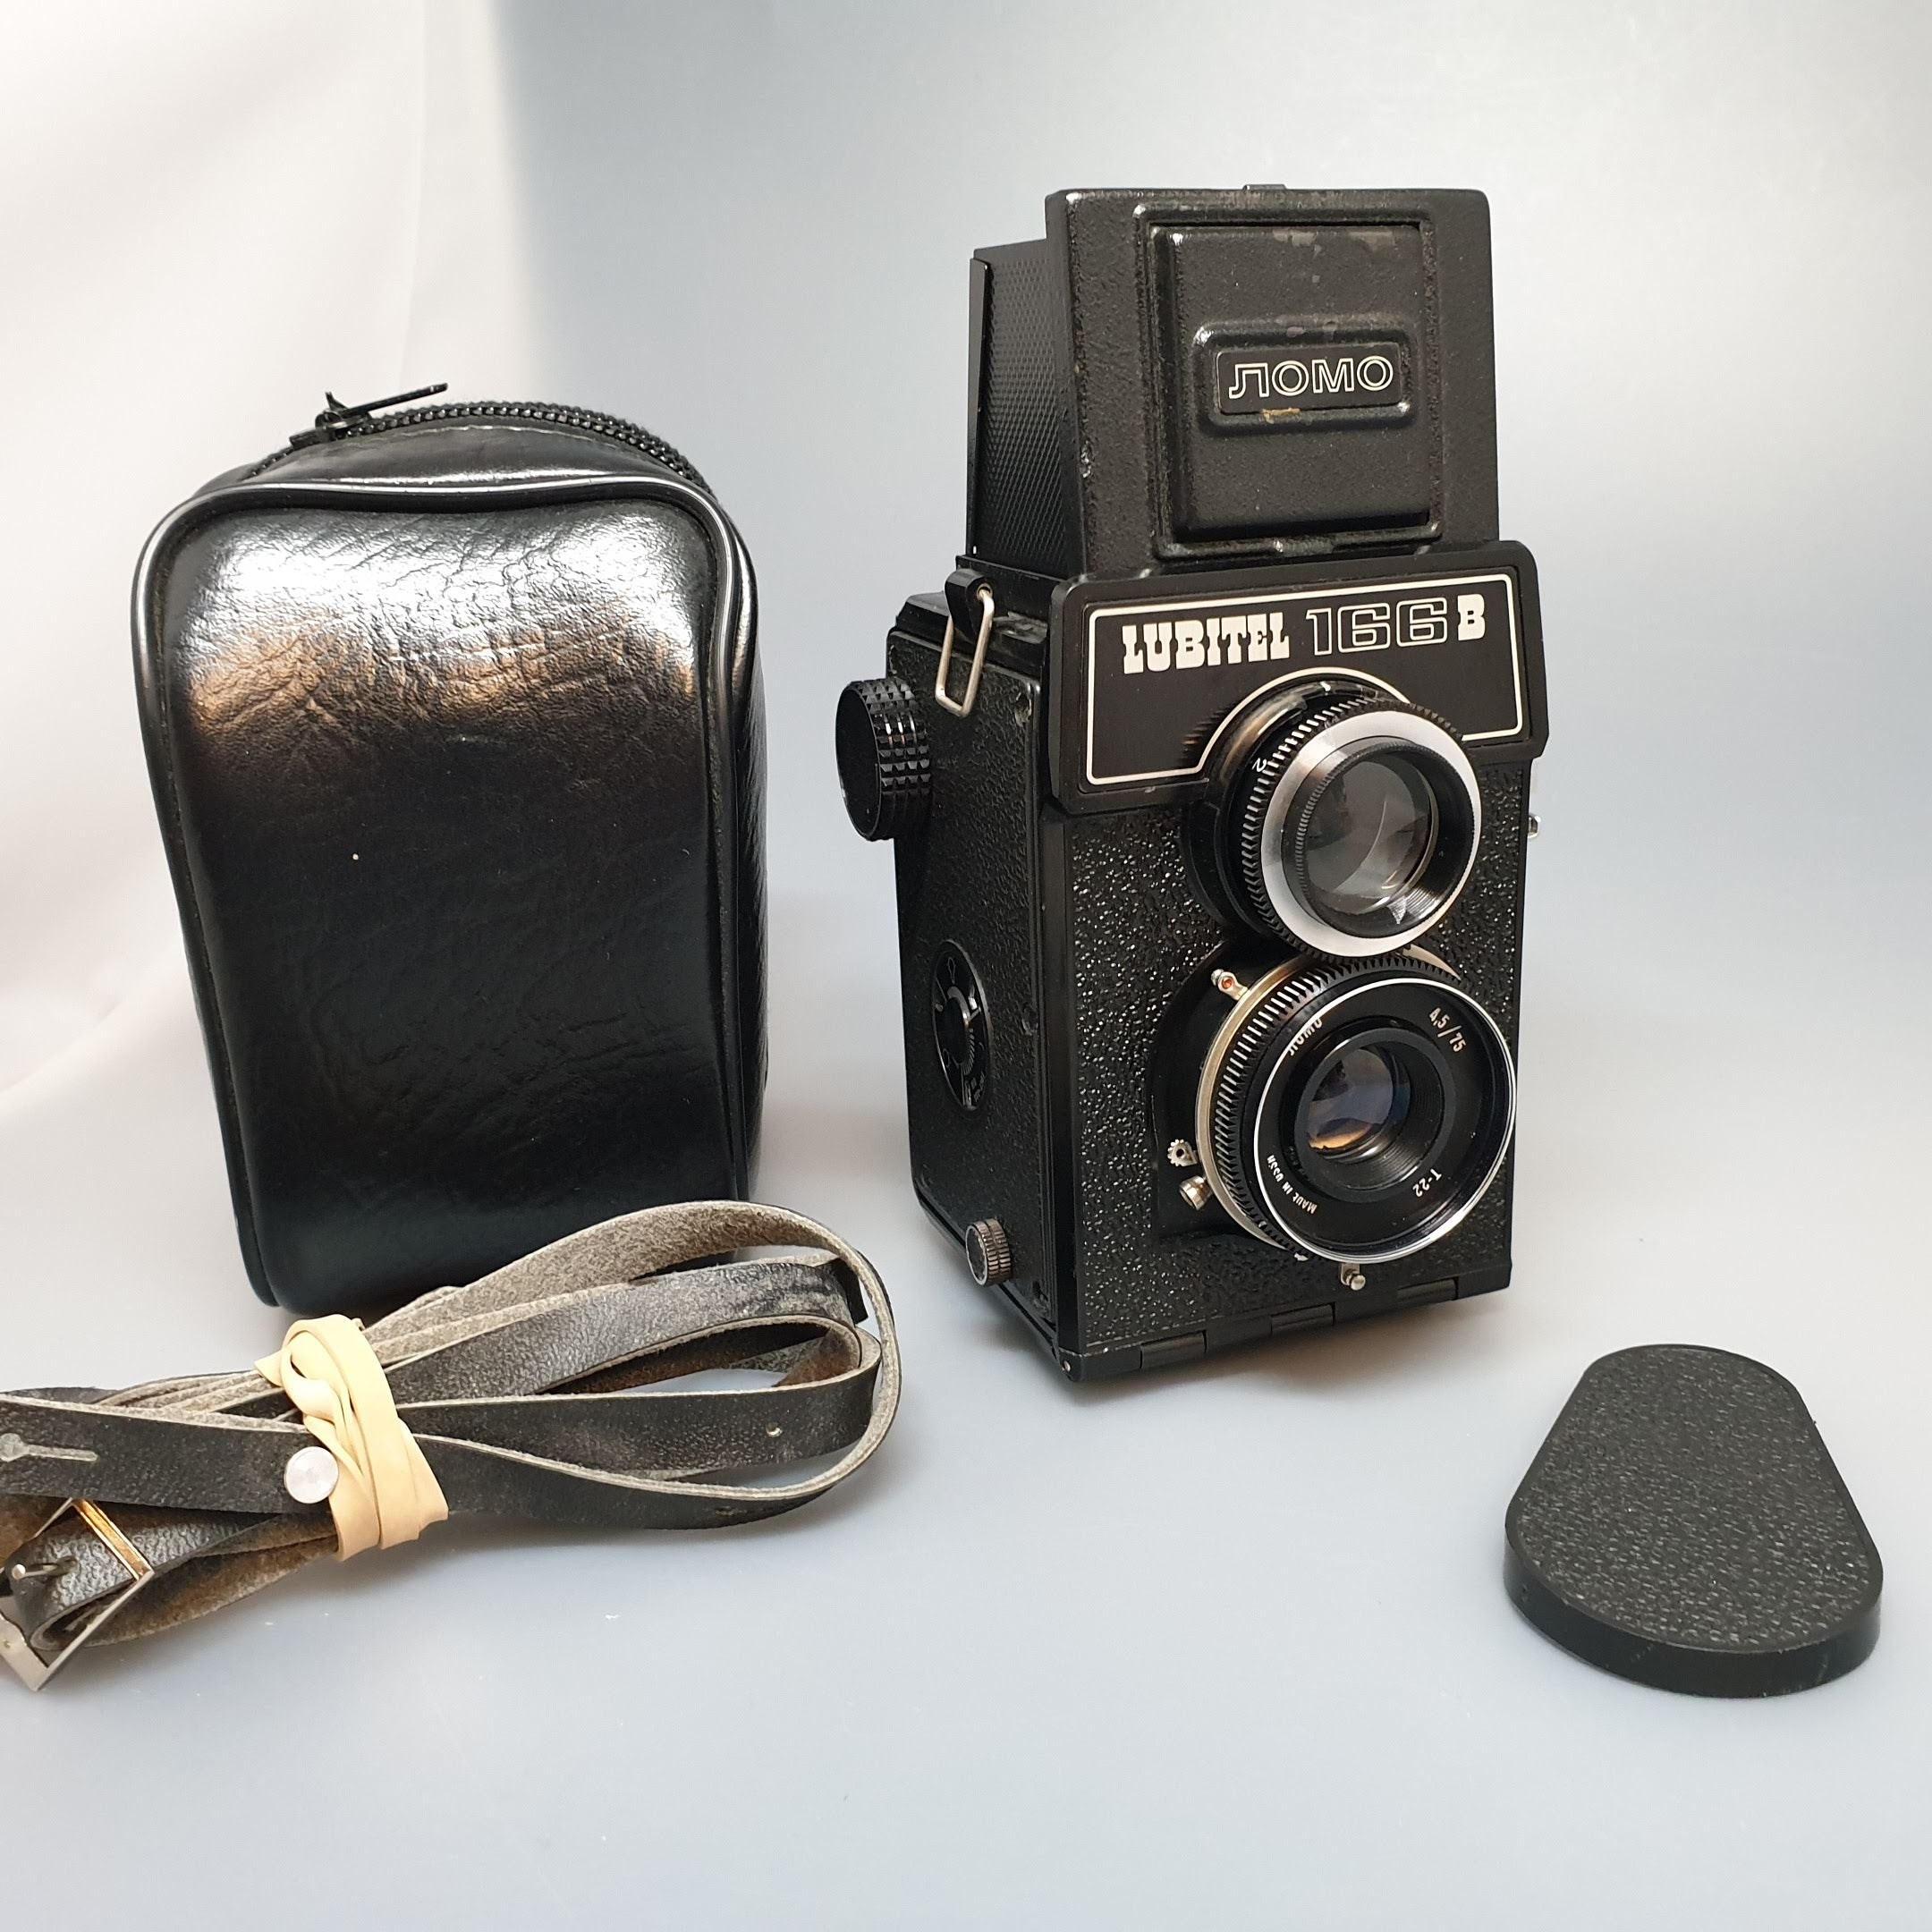 LOMO LUBITEL 166B, Twin Lens Reflex, 1980-89 - Greenwich Cameras and Film